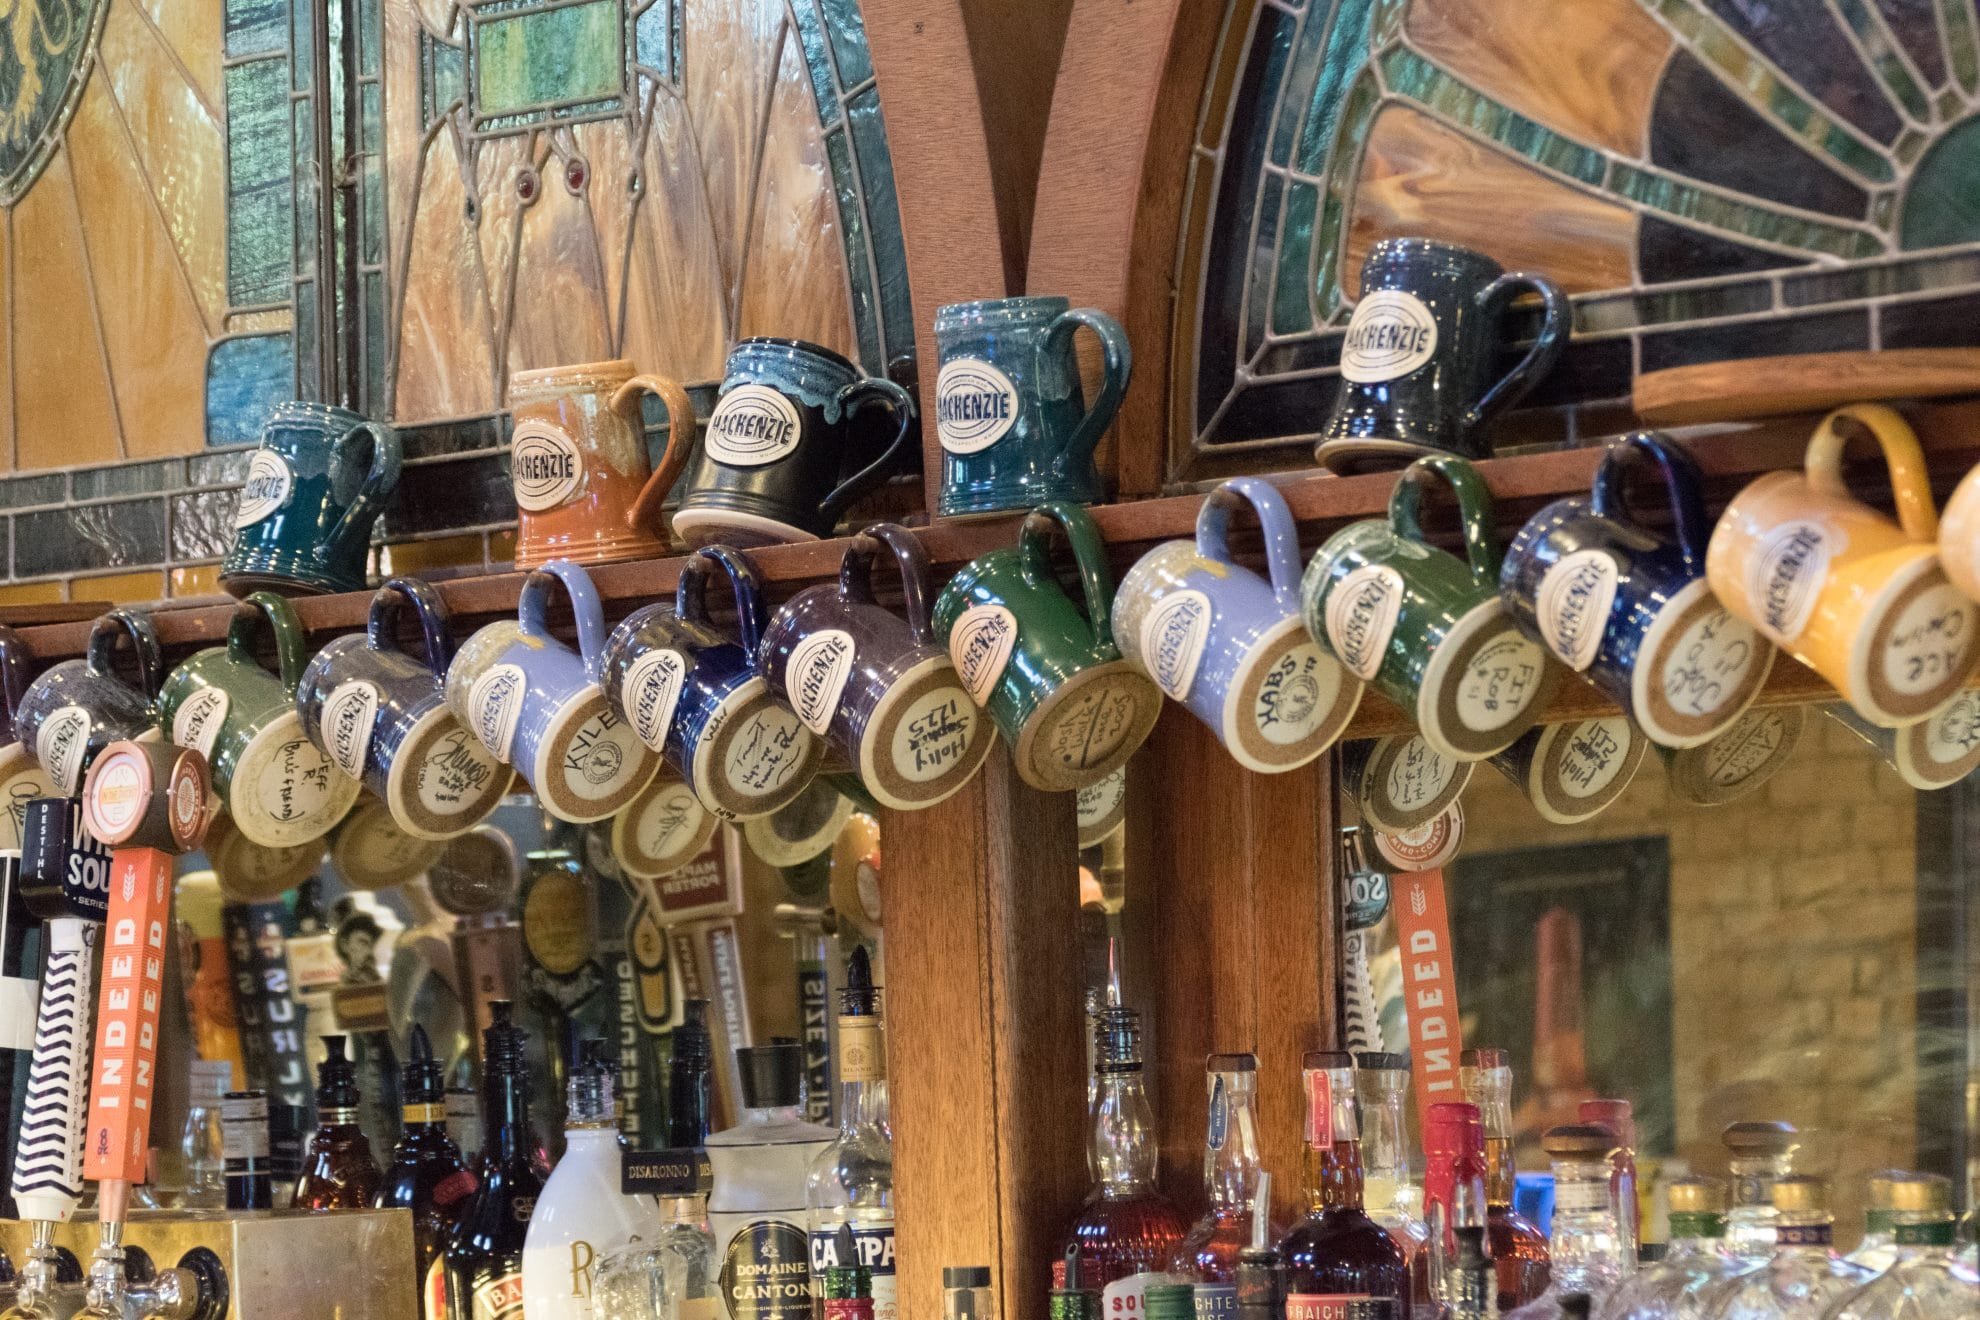 Marketing Your Business With Custom Beer Steins